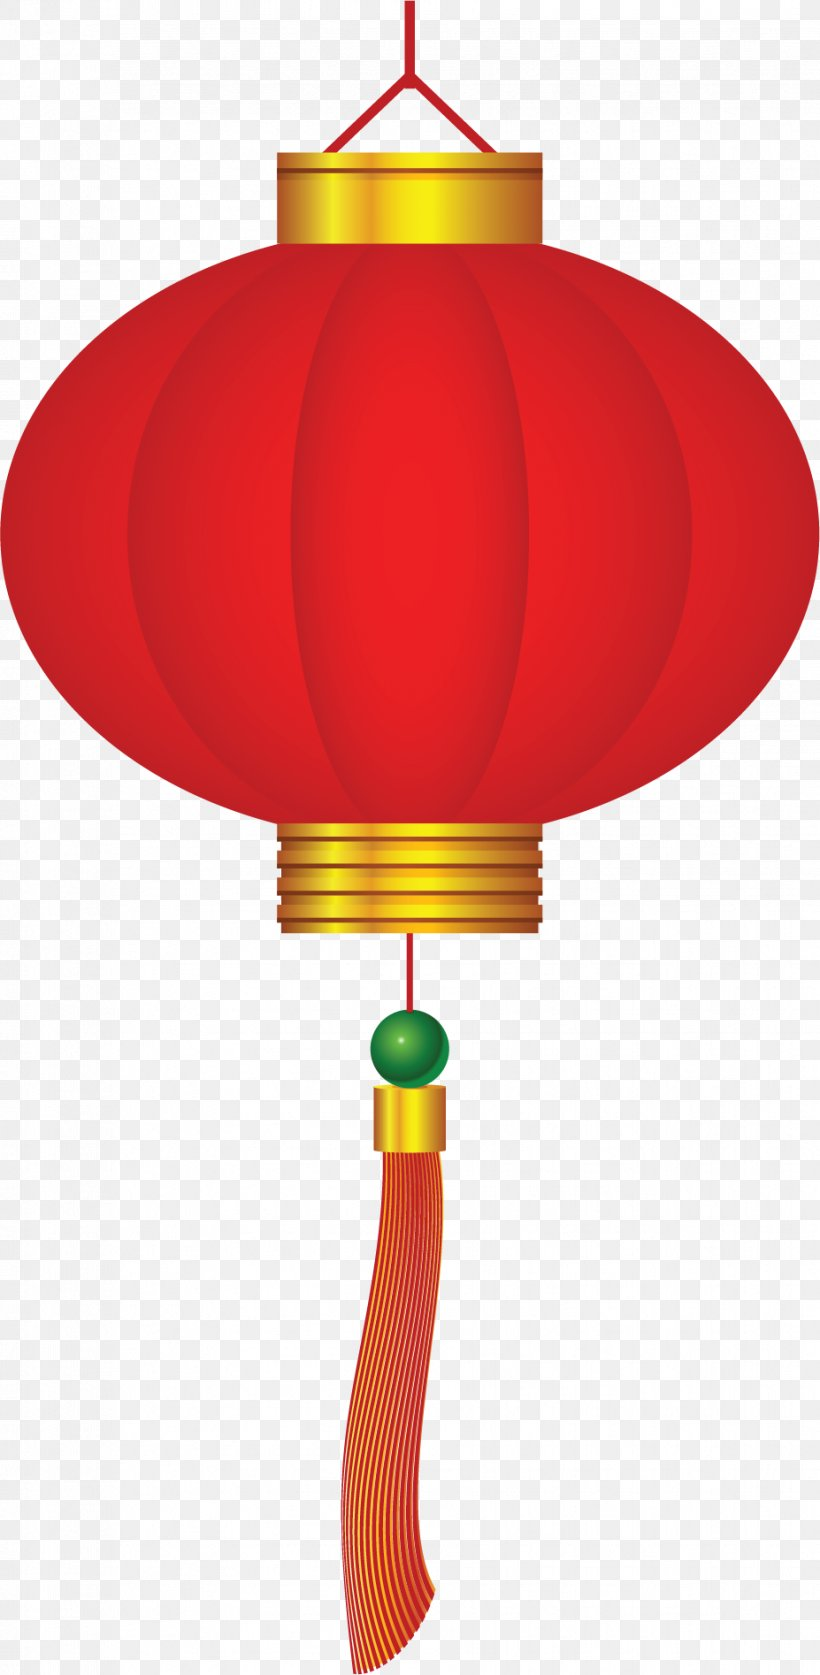 Tangyuan Chinese New Year Lantern Festival Clip Art, PNG ...